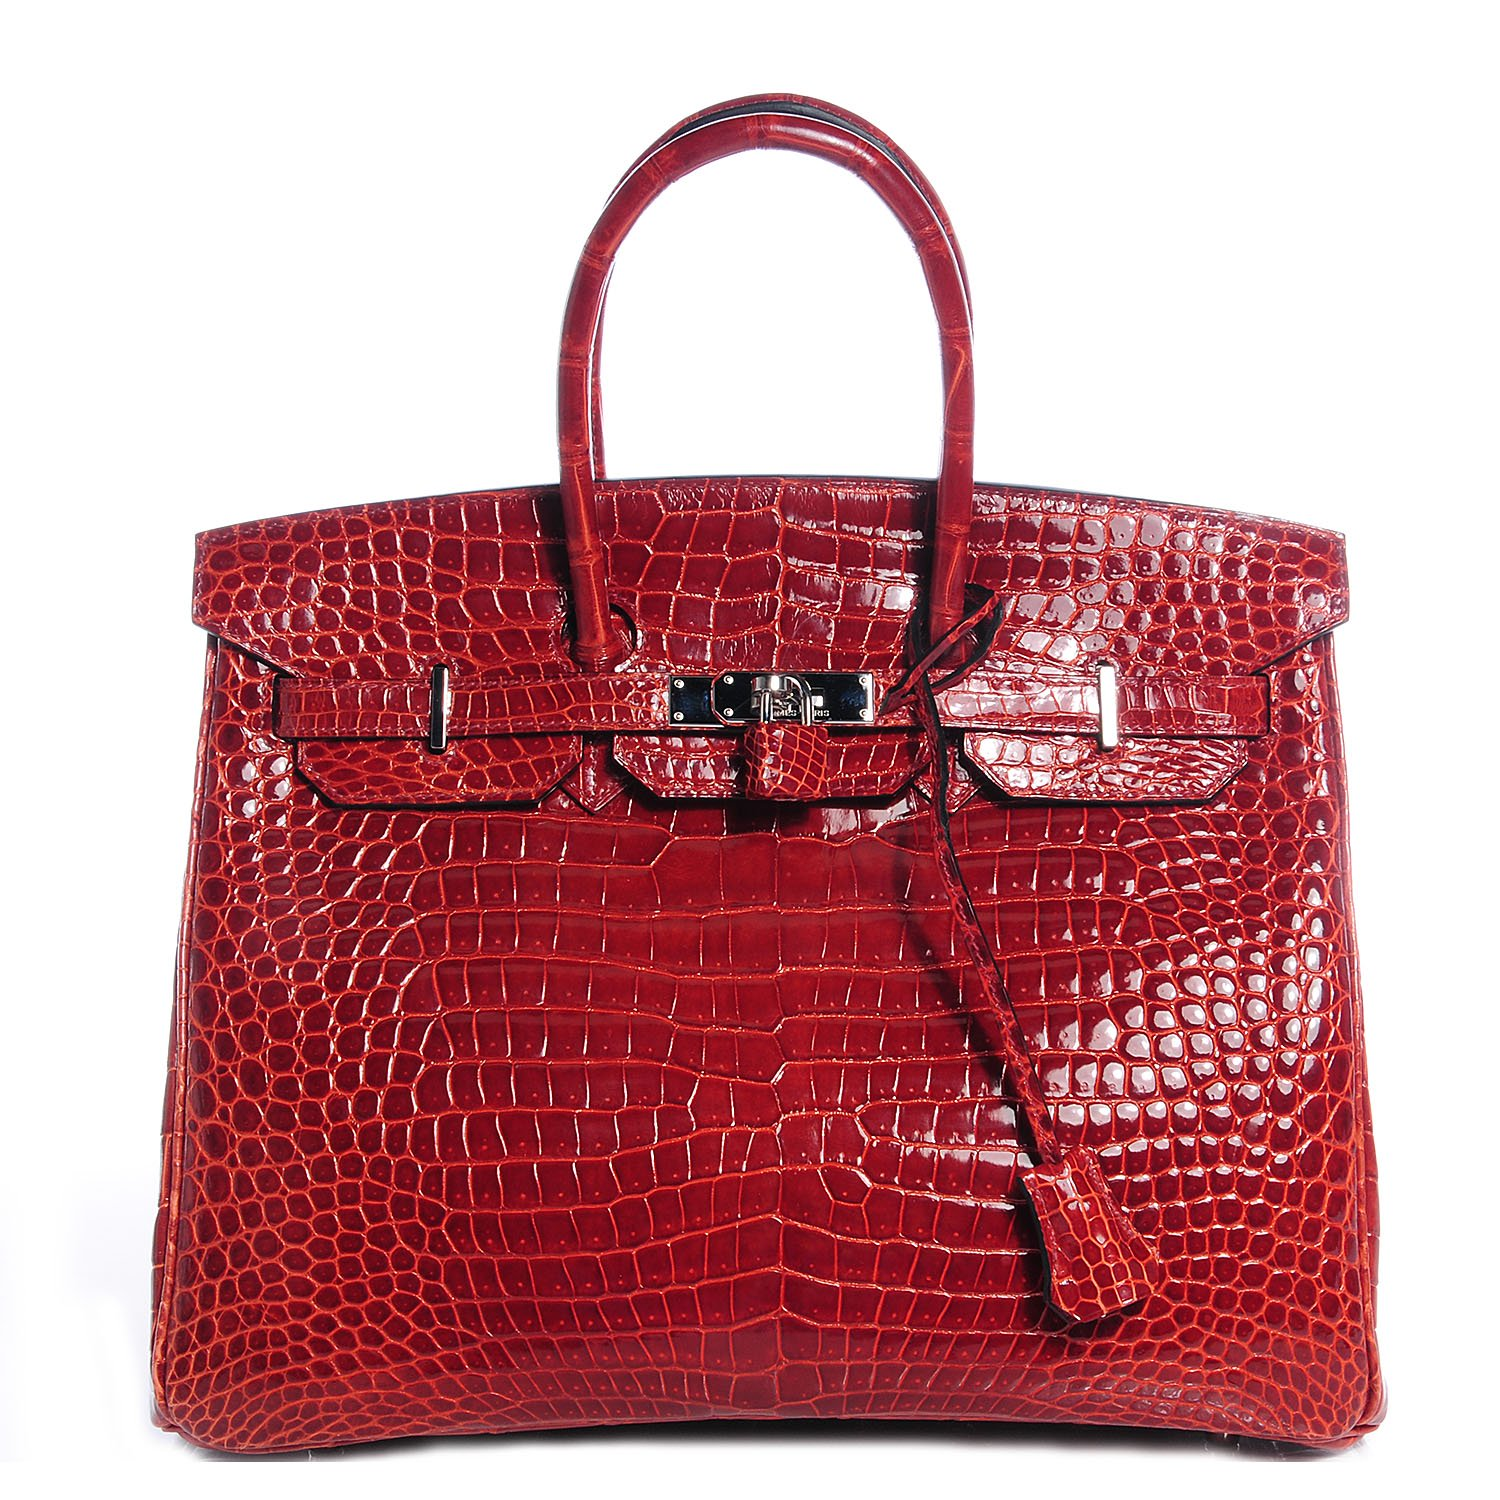 f86022a44c The Birkin by Hermès is one of the world s most popular bags (also ranked  at number 5). In 2015